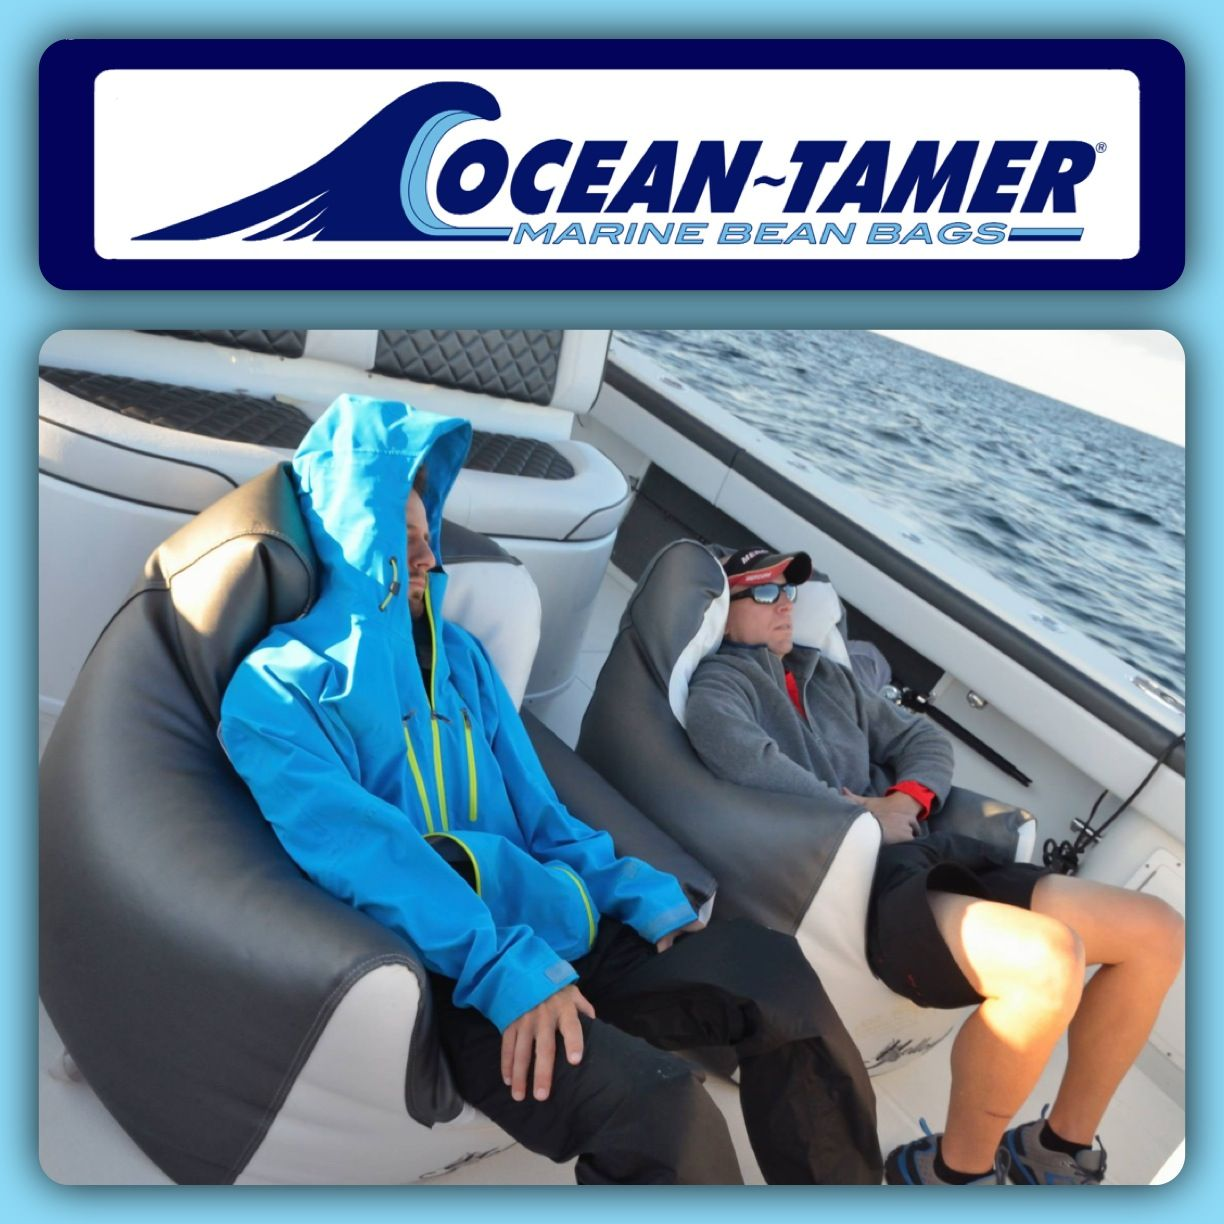 The Crew From Under Armour Fishing Team Riding In Comfort And Style Aboard Their Mercury